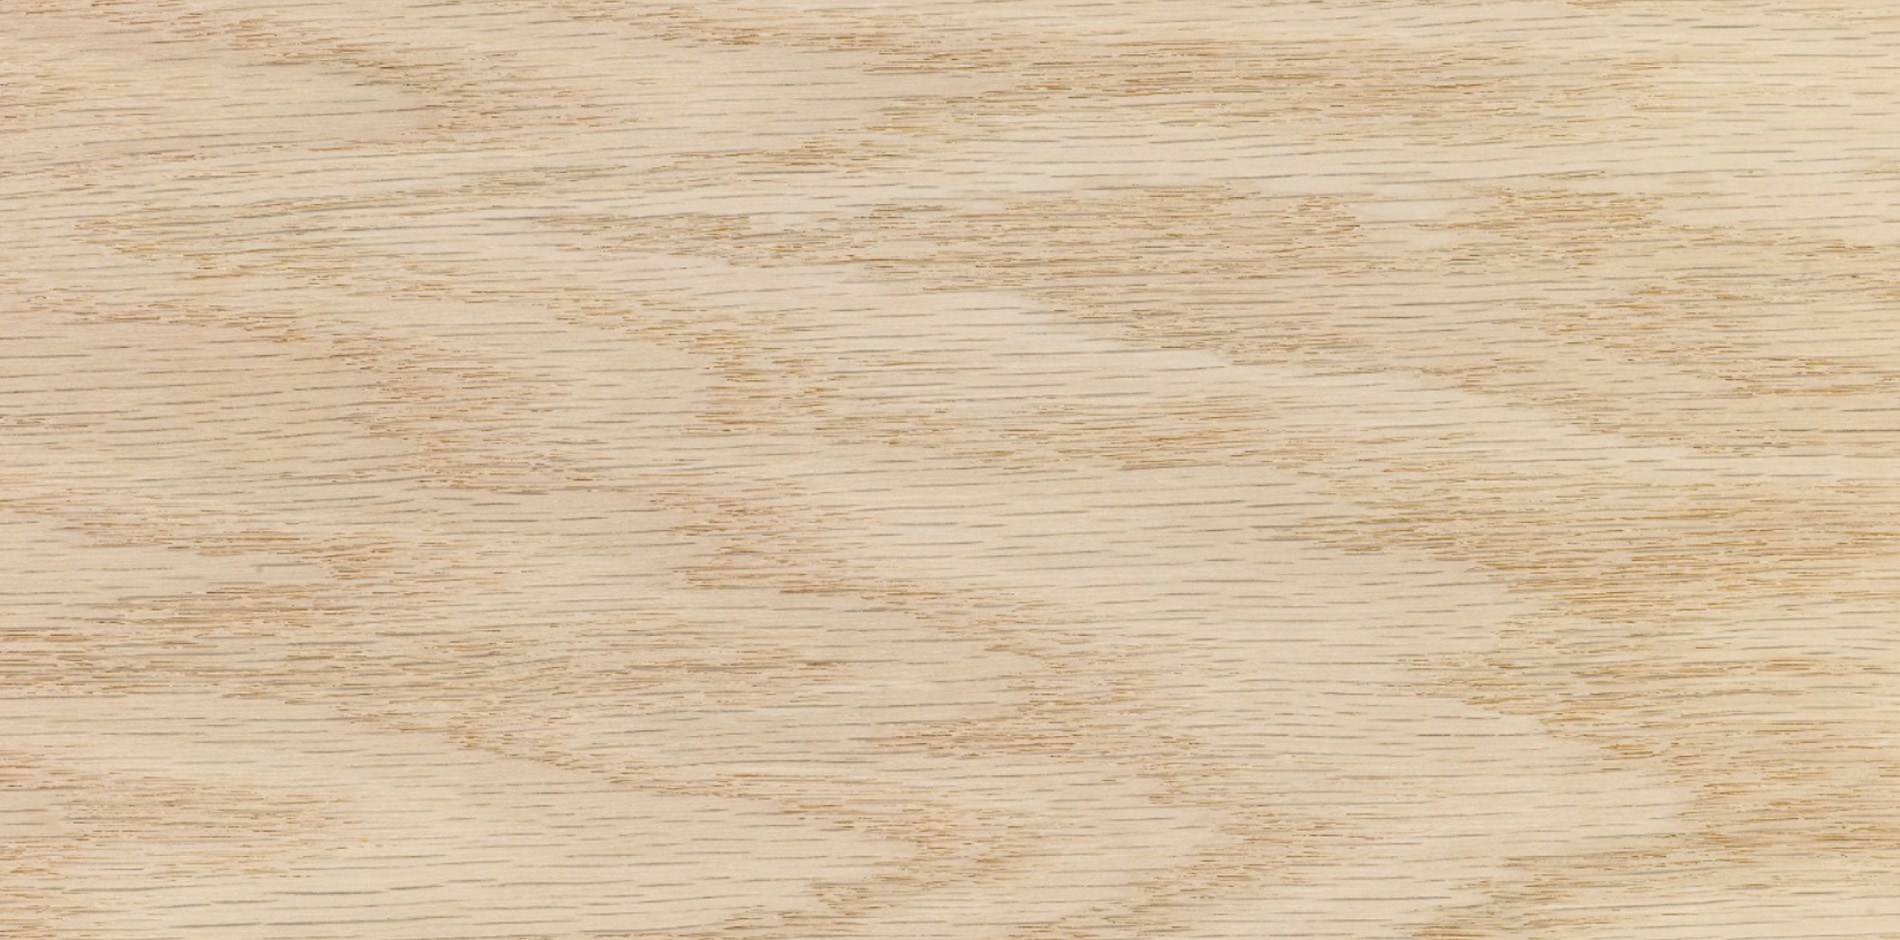 garnica_plywood_red_oak_3